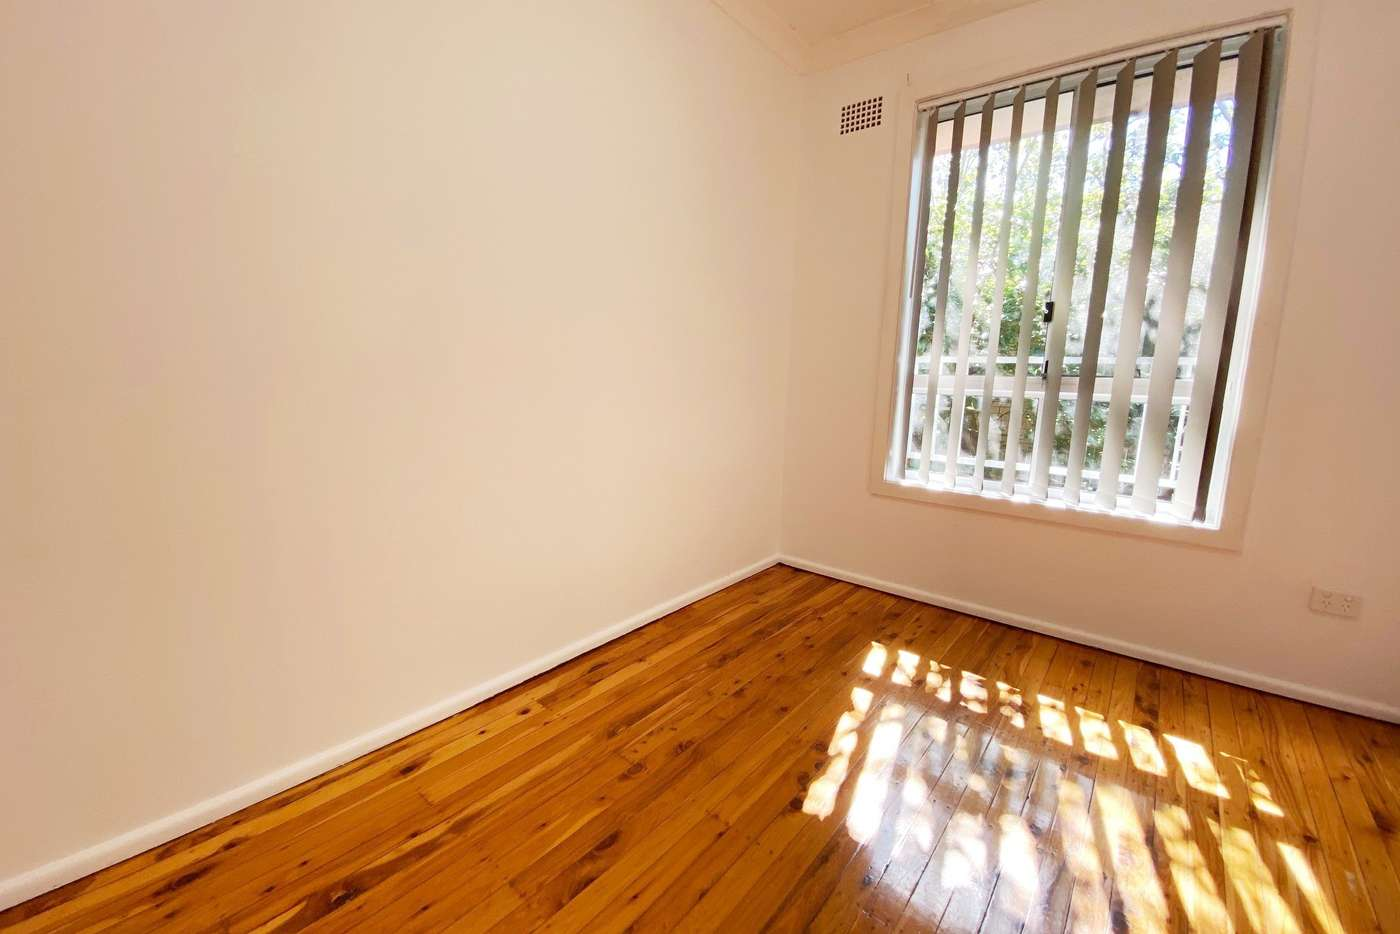 Sixth view of Homely unit listing, 2/56 Shadforth Street, Wiley Park NSW 2195